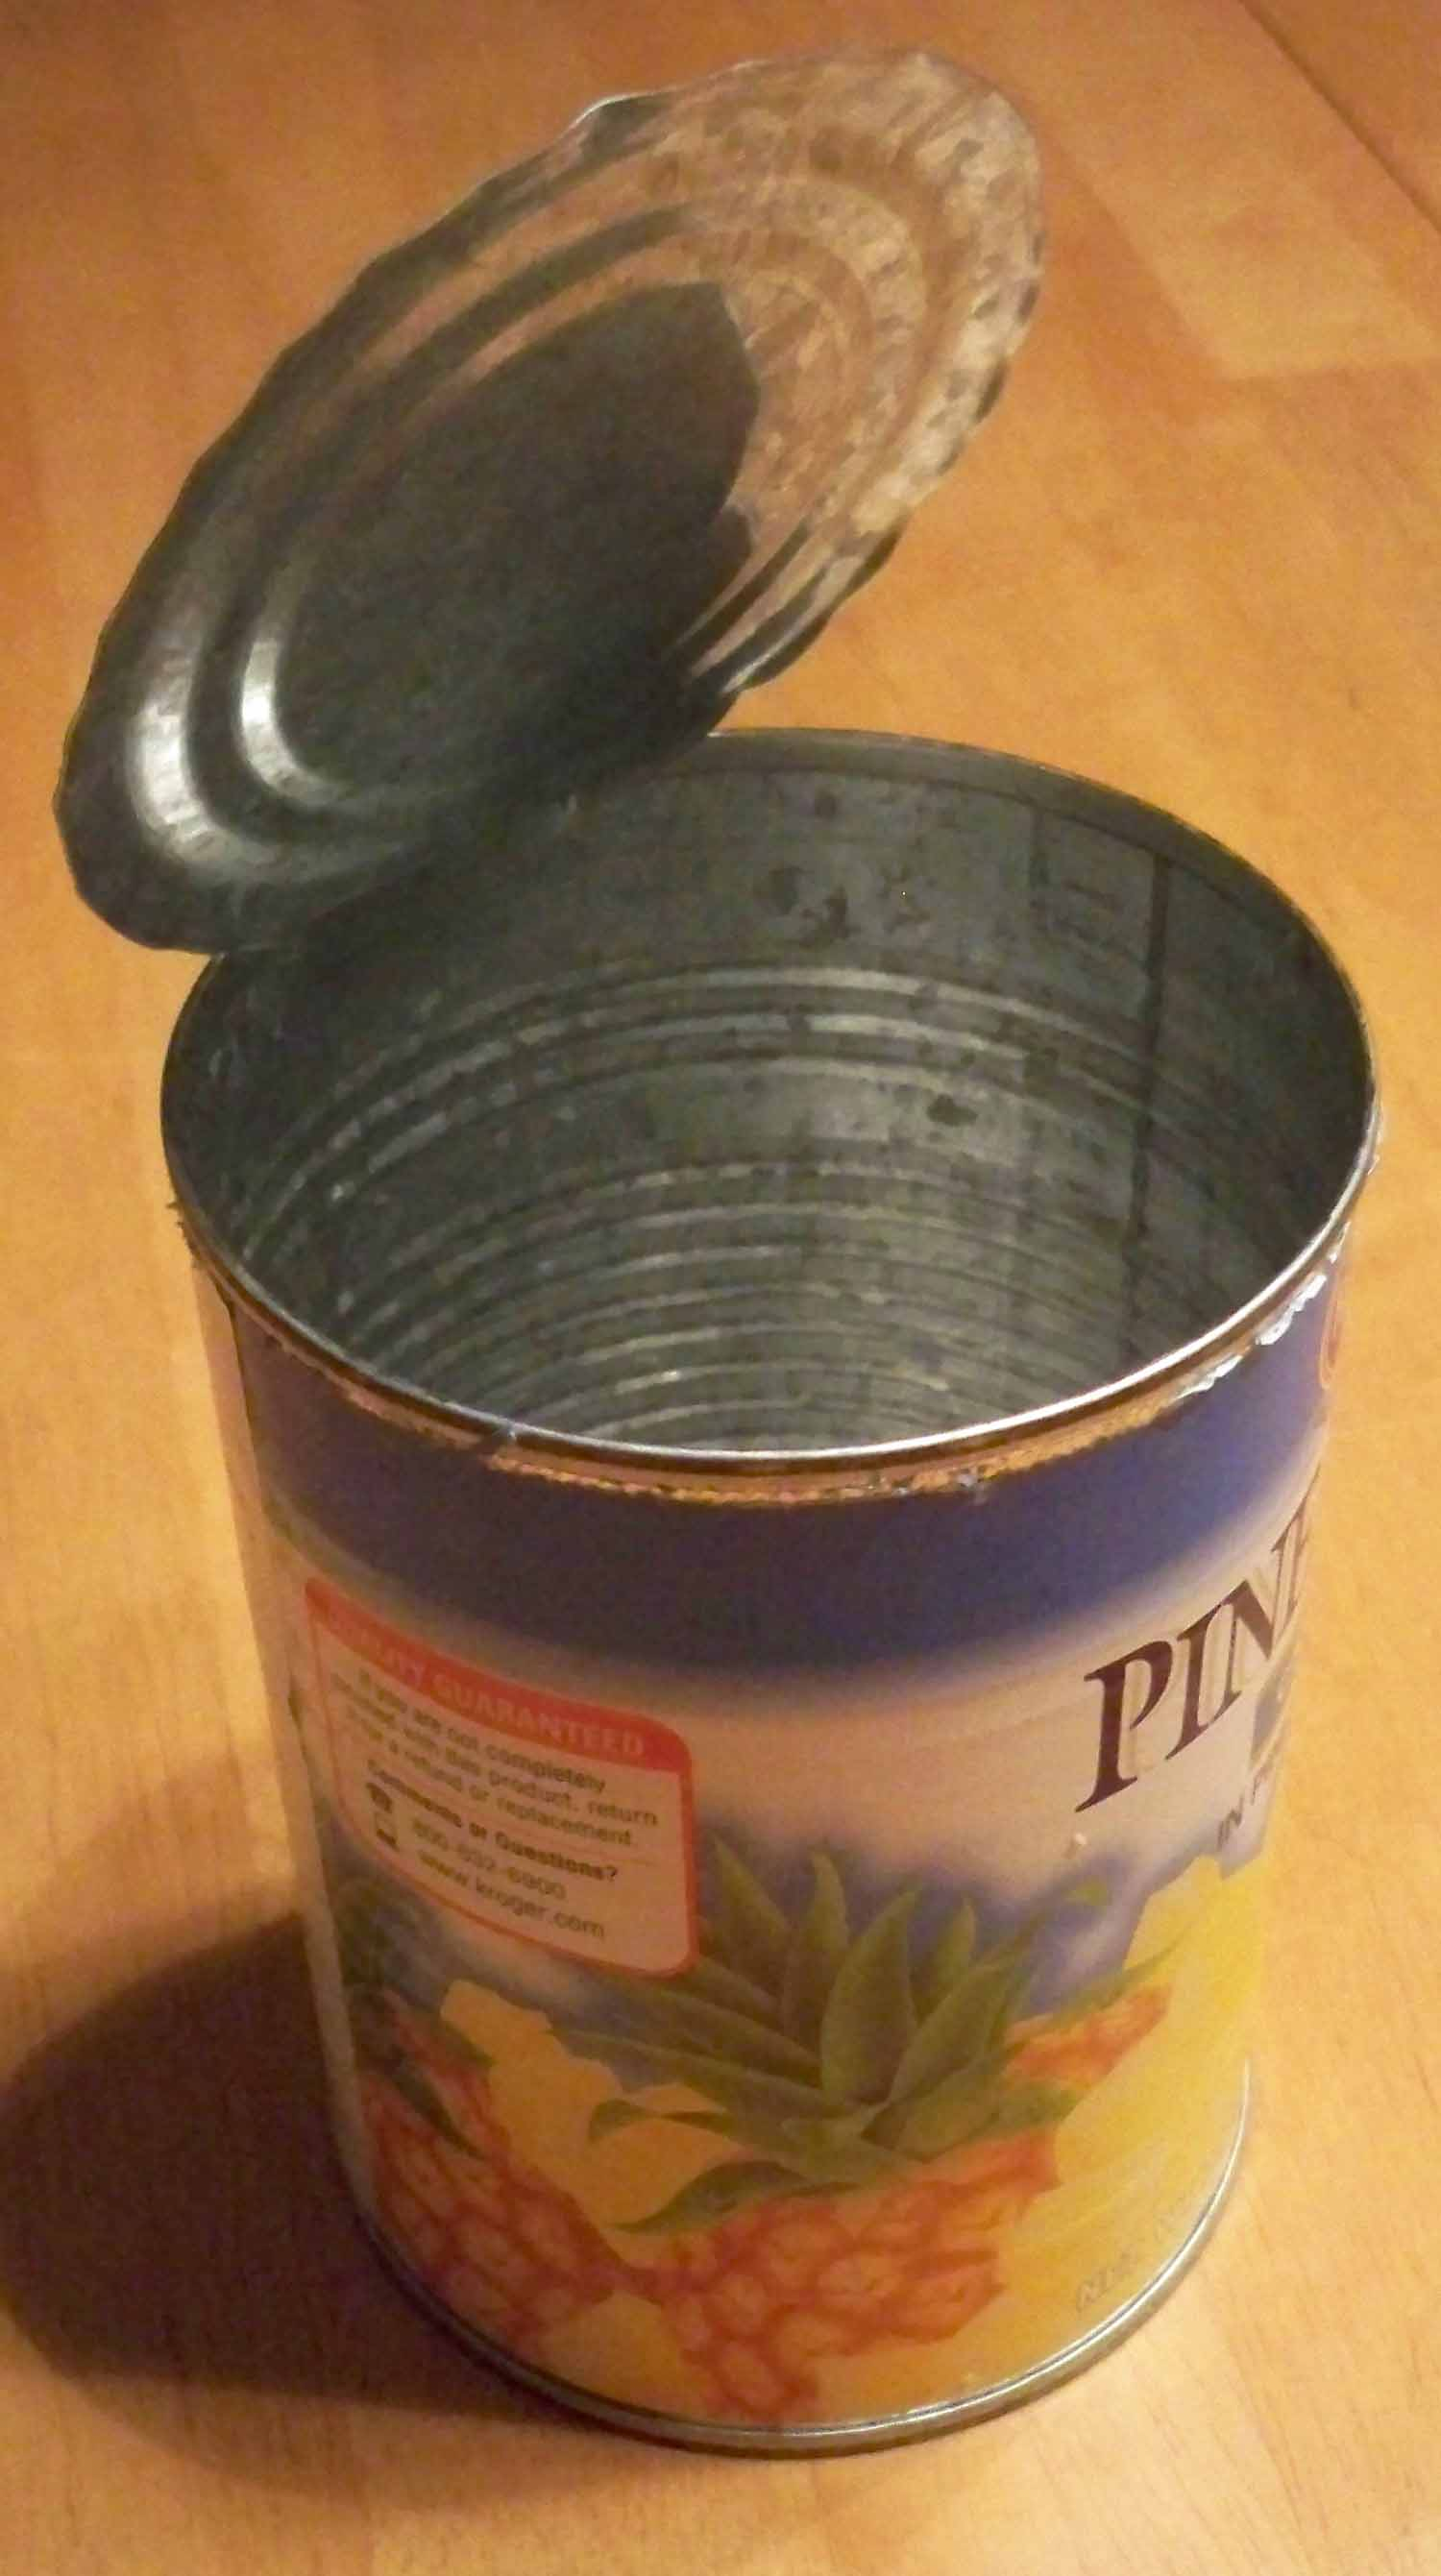 Cutting yourself on the lid is no longer the scariest thing about canned goods.